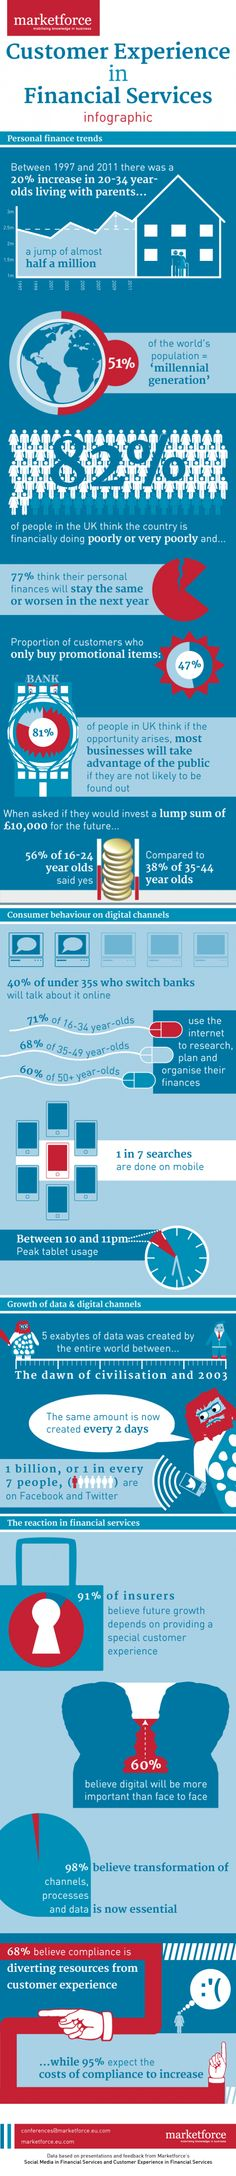 Customer Experience in Financial Services